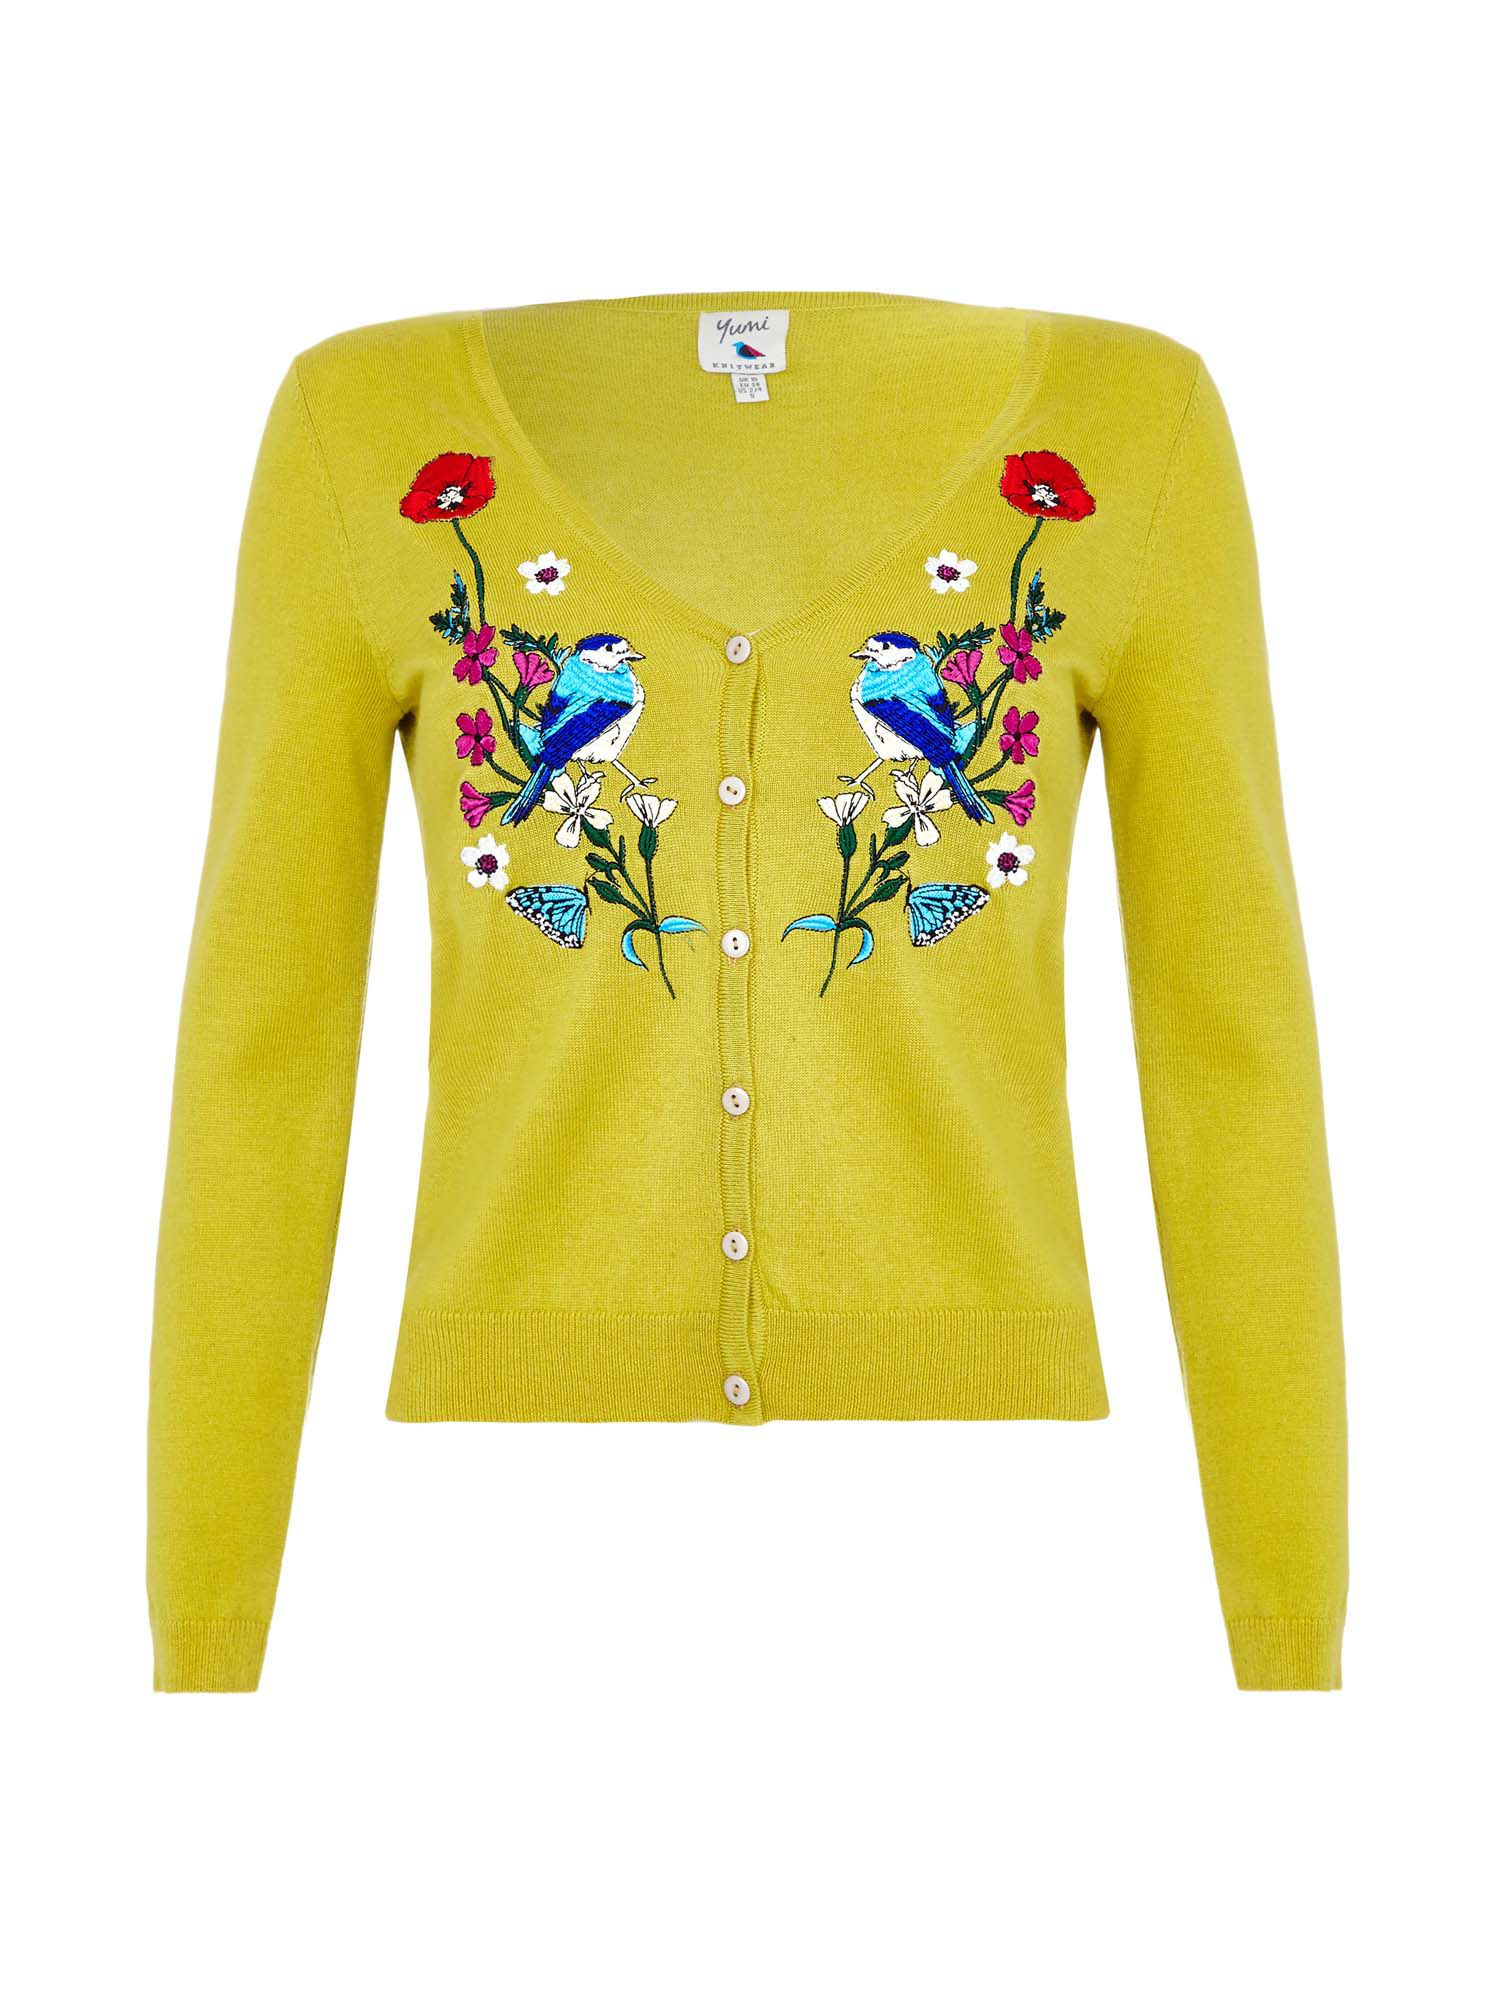 1950s Style Sweaters, Crop Cardigans, Twin Sets Yumi Floral Bird Embroidered Cardigan Yellow £24.00 AT vintagedancer.com